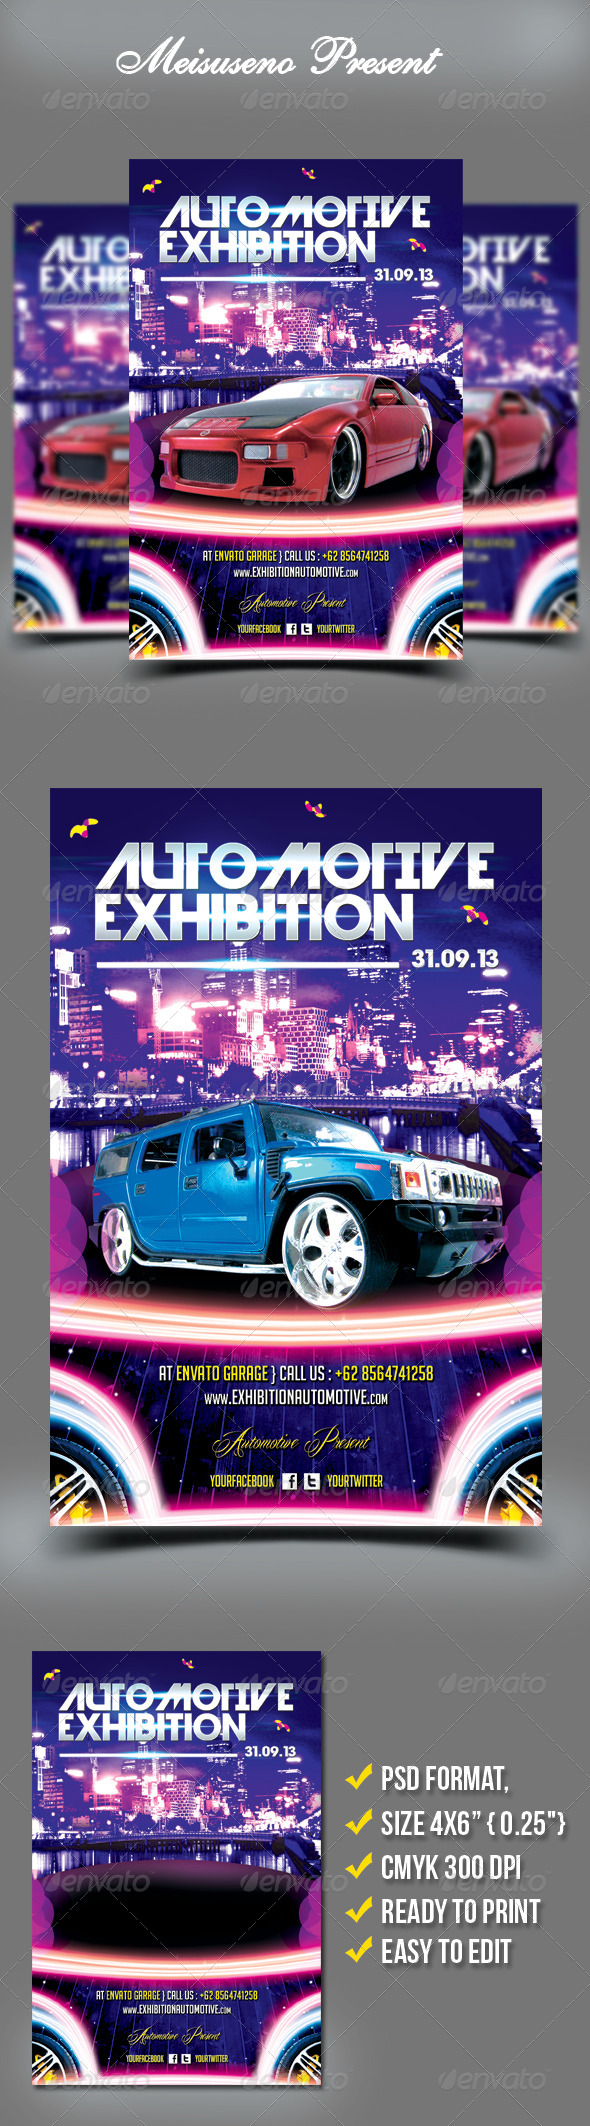 Automotive Exhibition Flyer Template - Miscellaneous Events